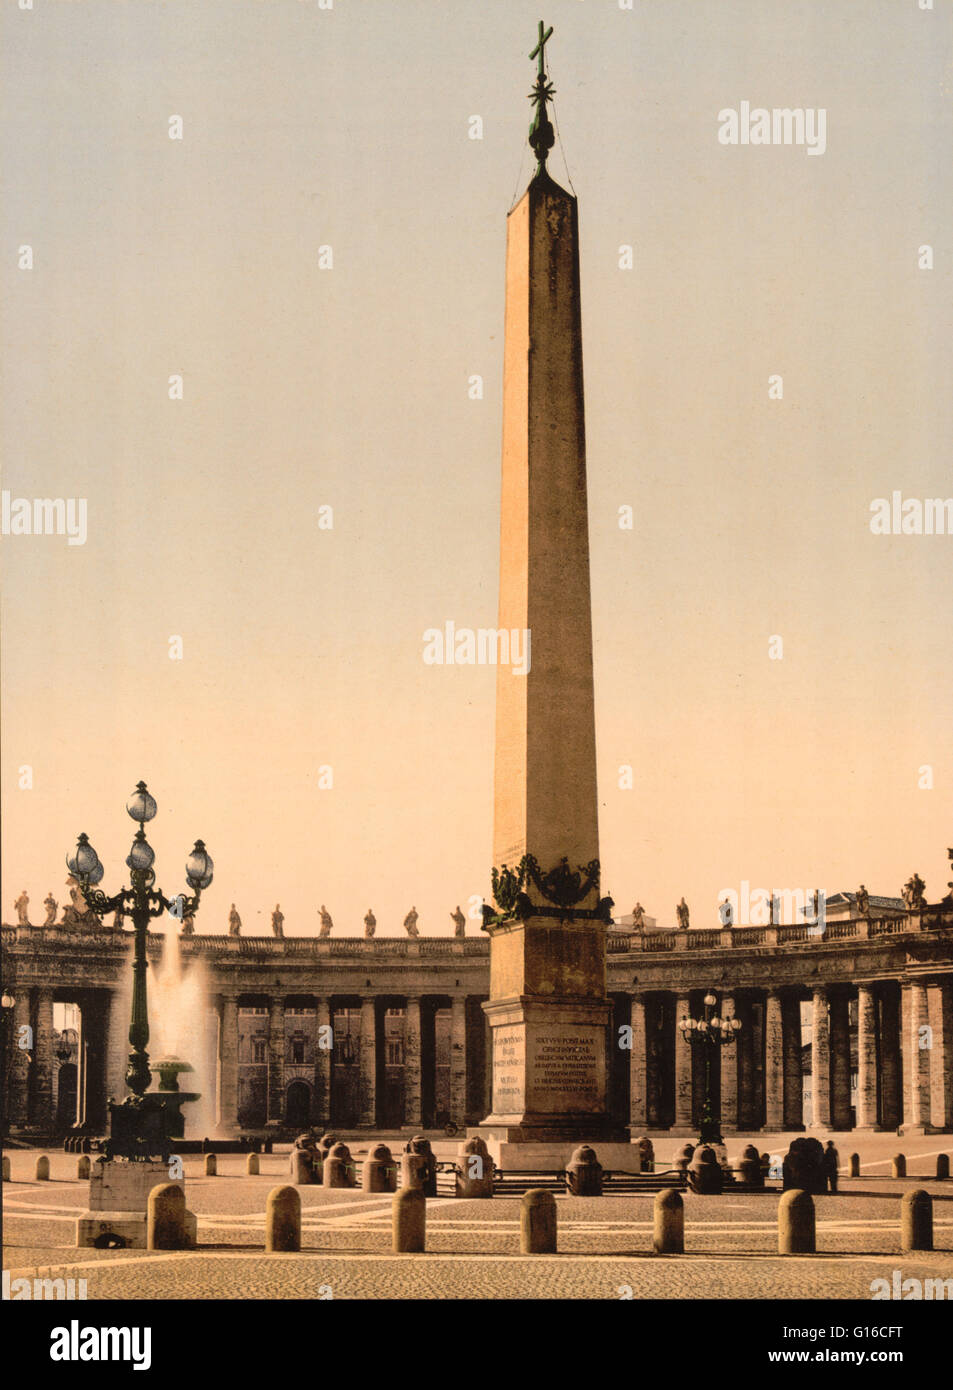 St. Peter's Place, the obelisk, Rome, Italy. The obelisk was originally erected at Heliopolis by an unknown - Stock Image